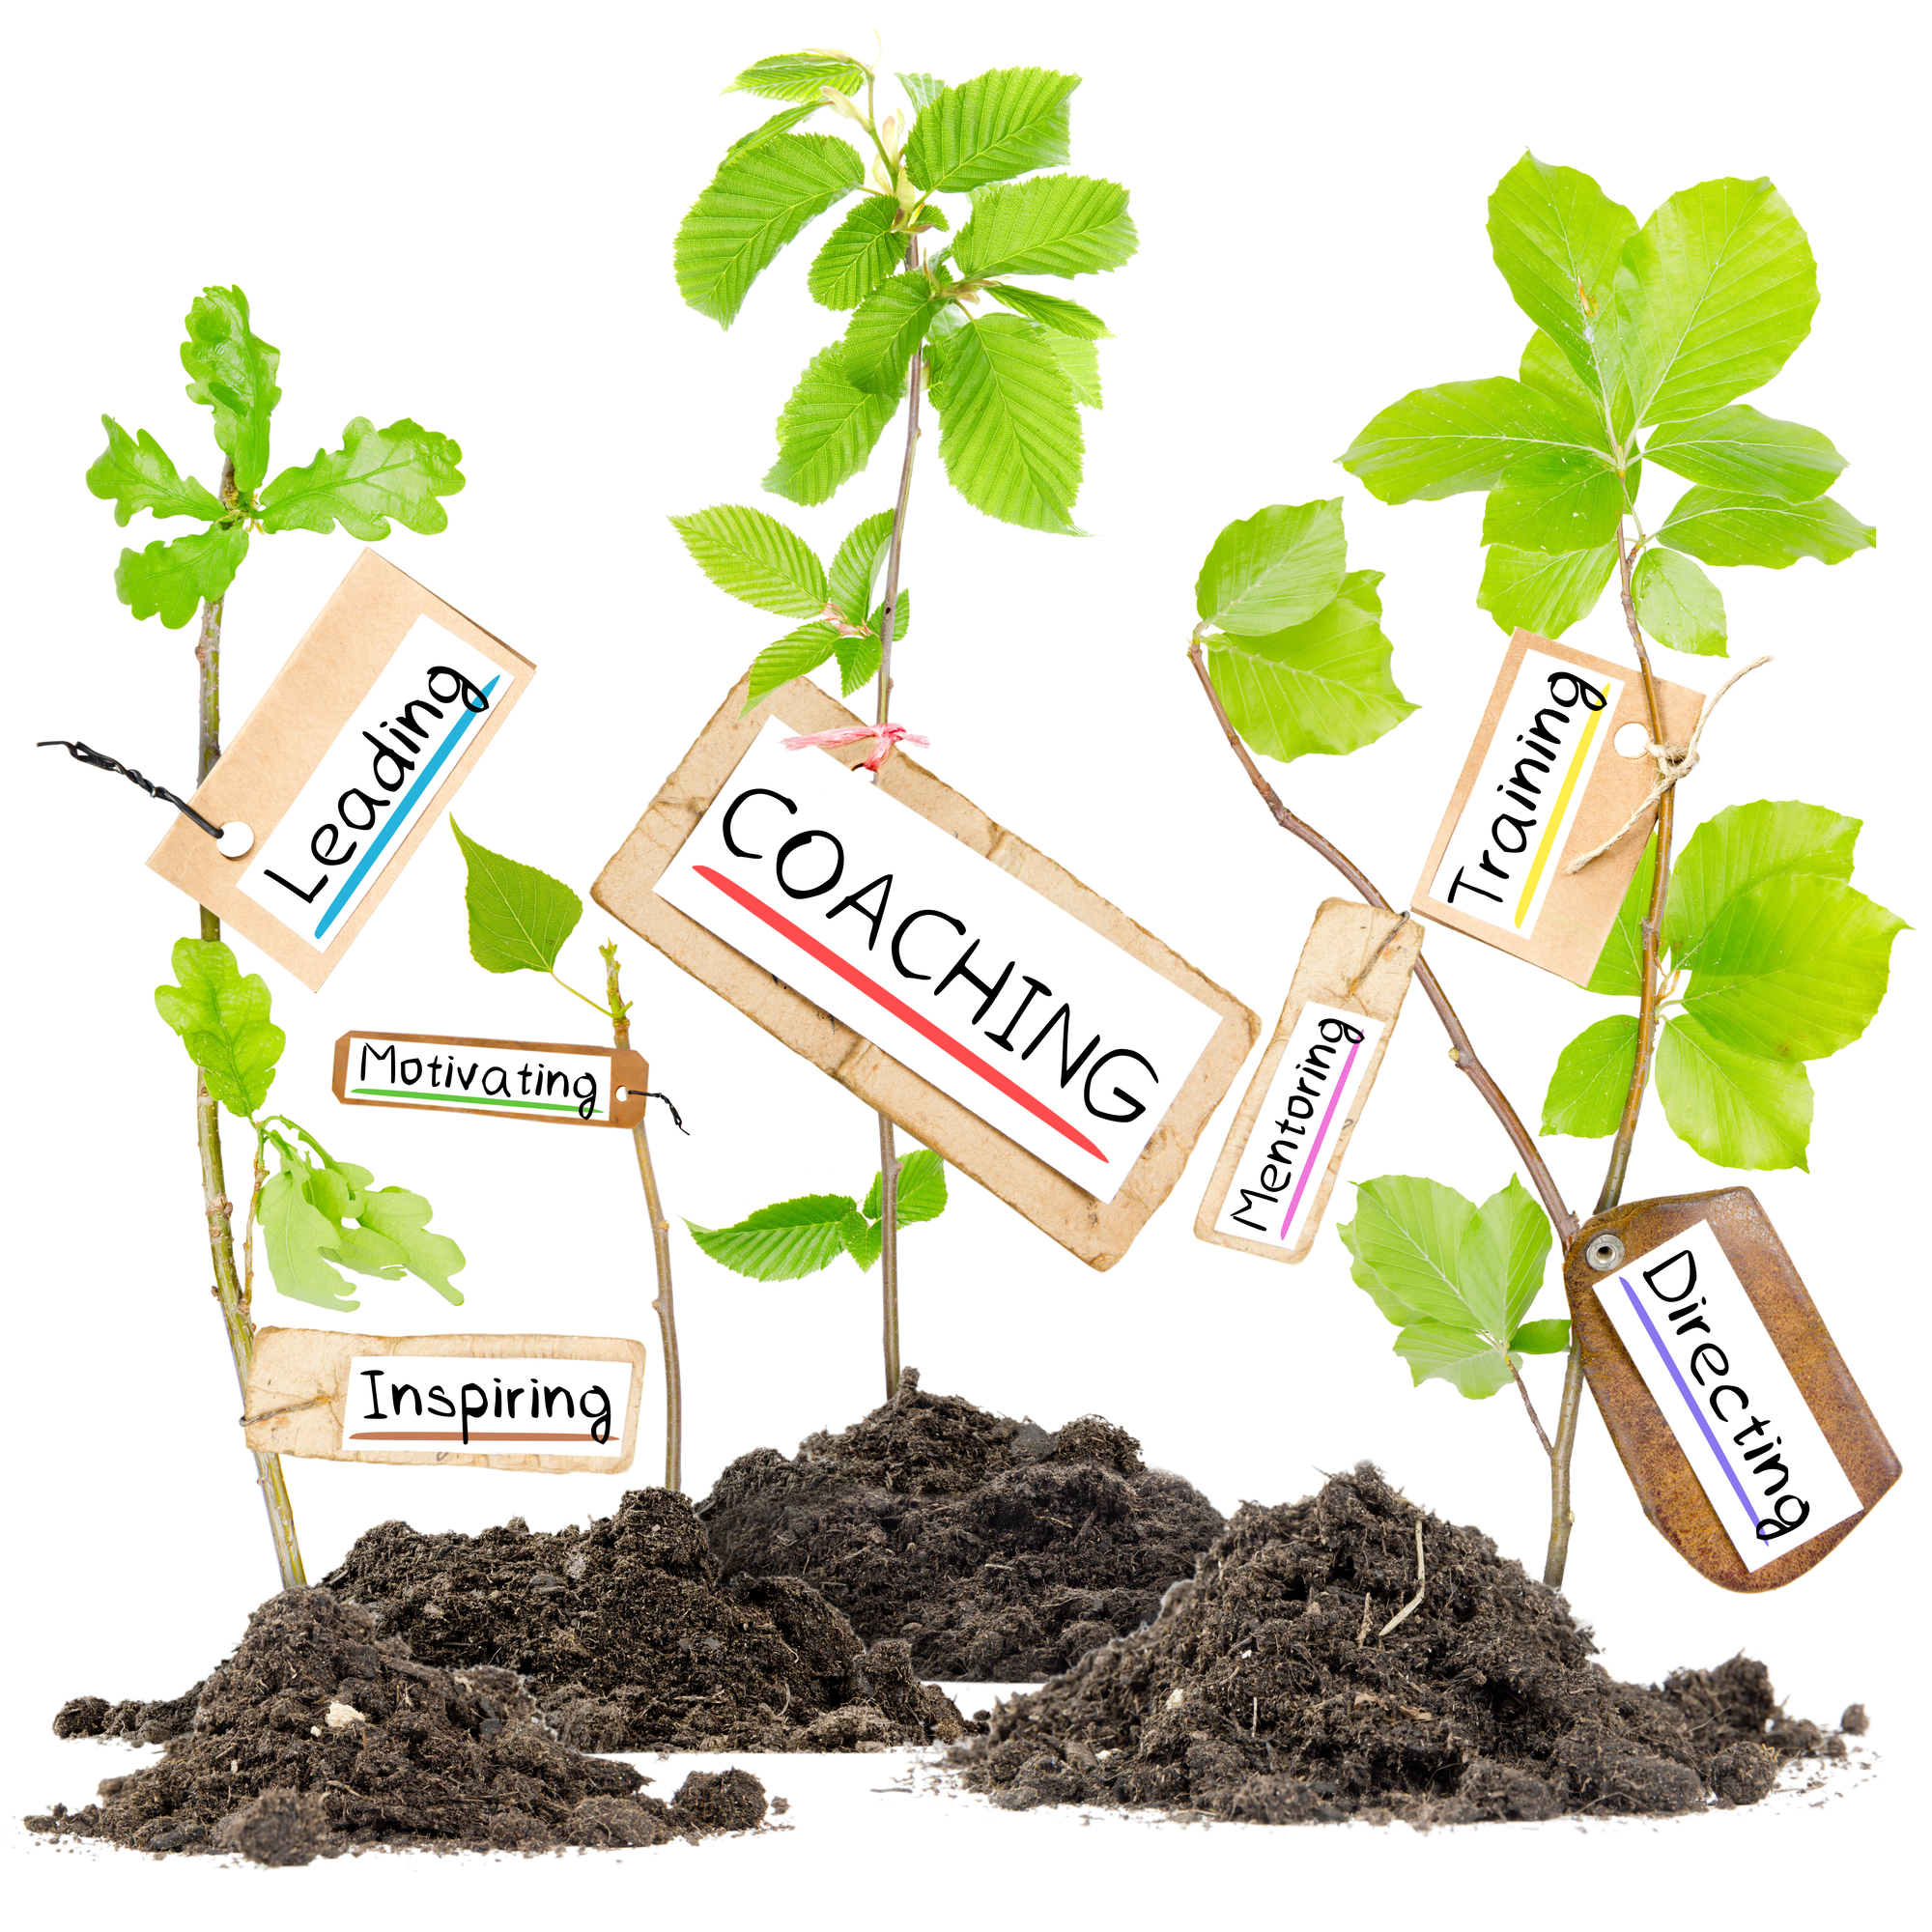 Photo of plants growing from soil heaps with COACHING conceptual words written on paper cards